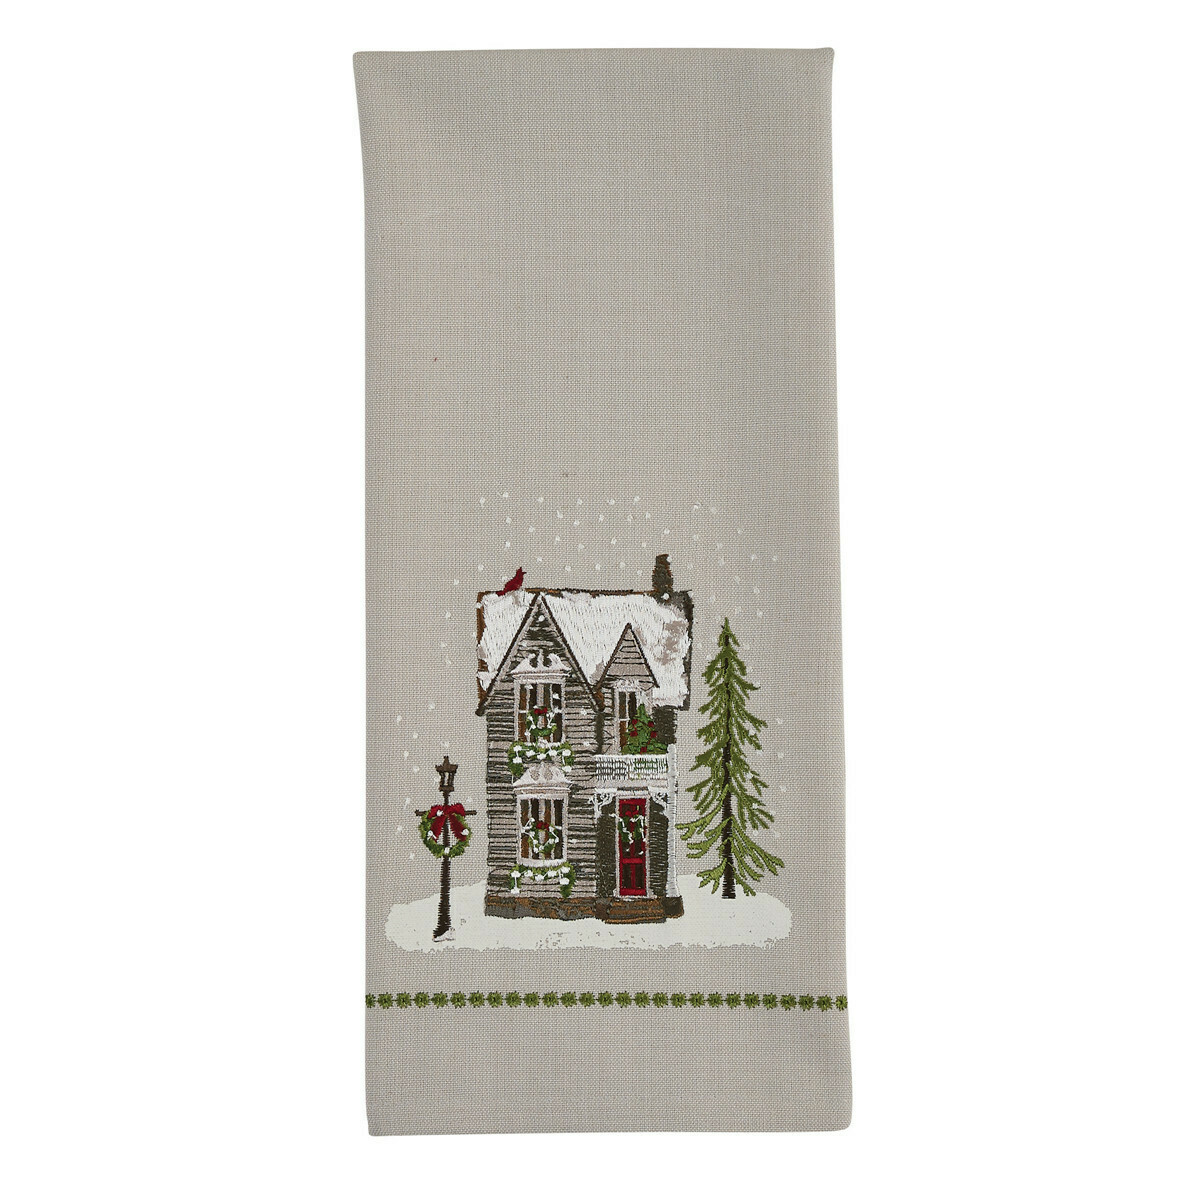 House Printed & Embroidered Dishtowel